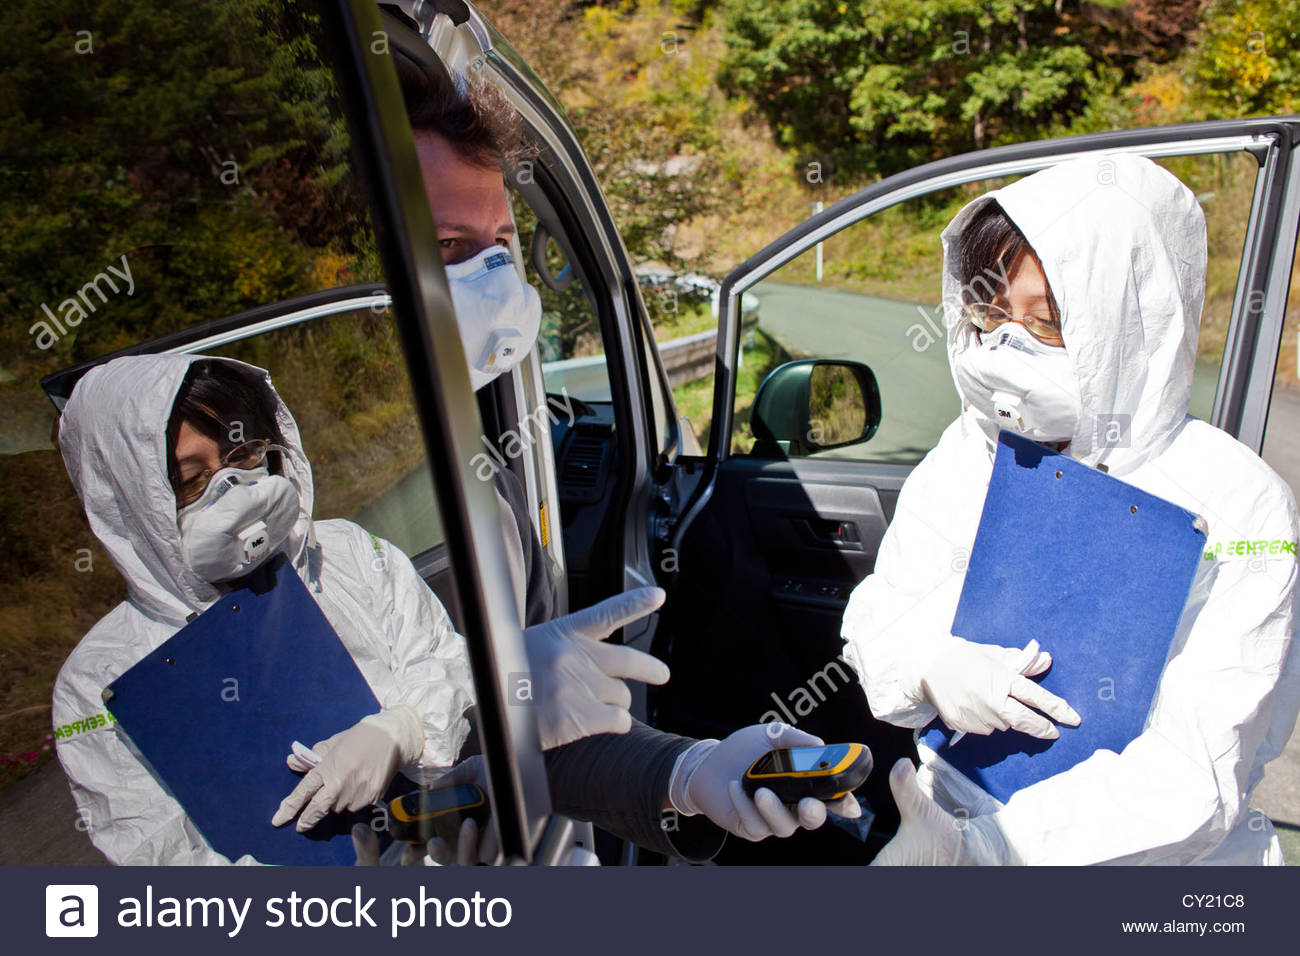 A Greenpeace radiation monitoring team checks contamination levels in Iitate - Stock Image